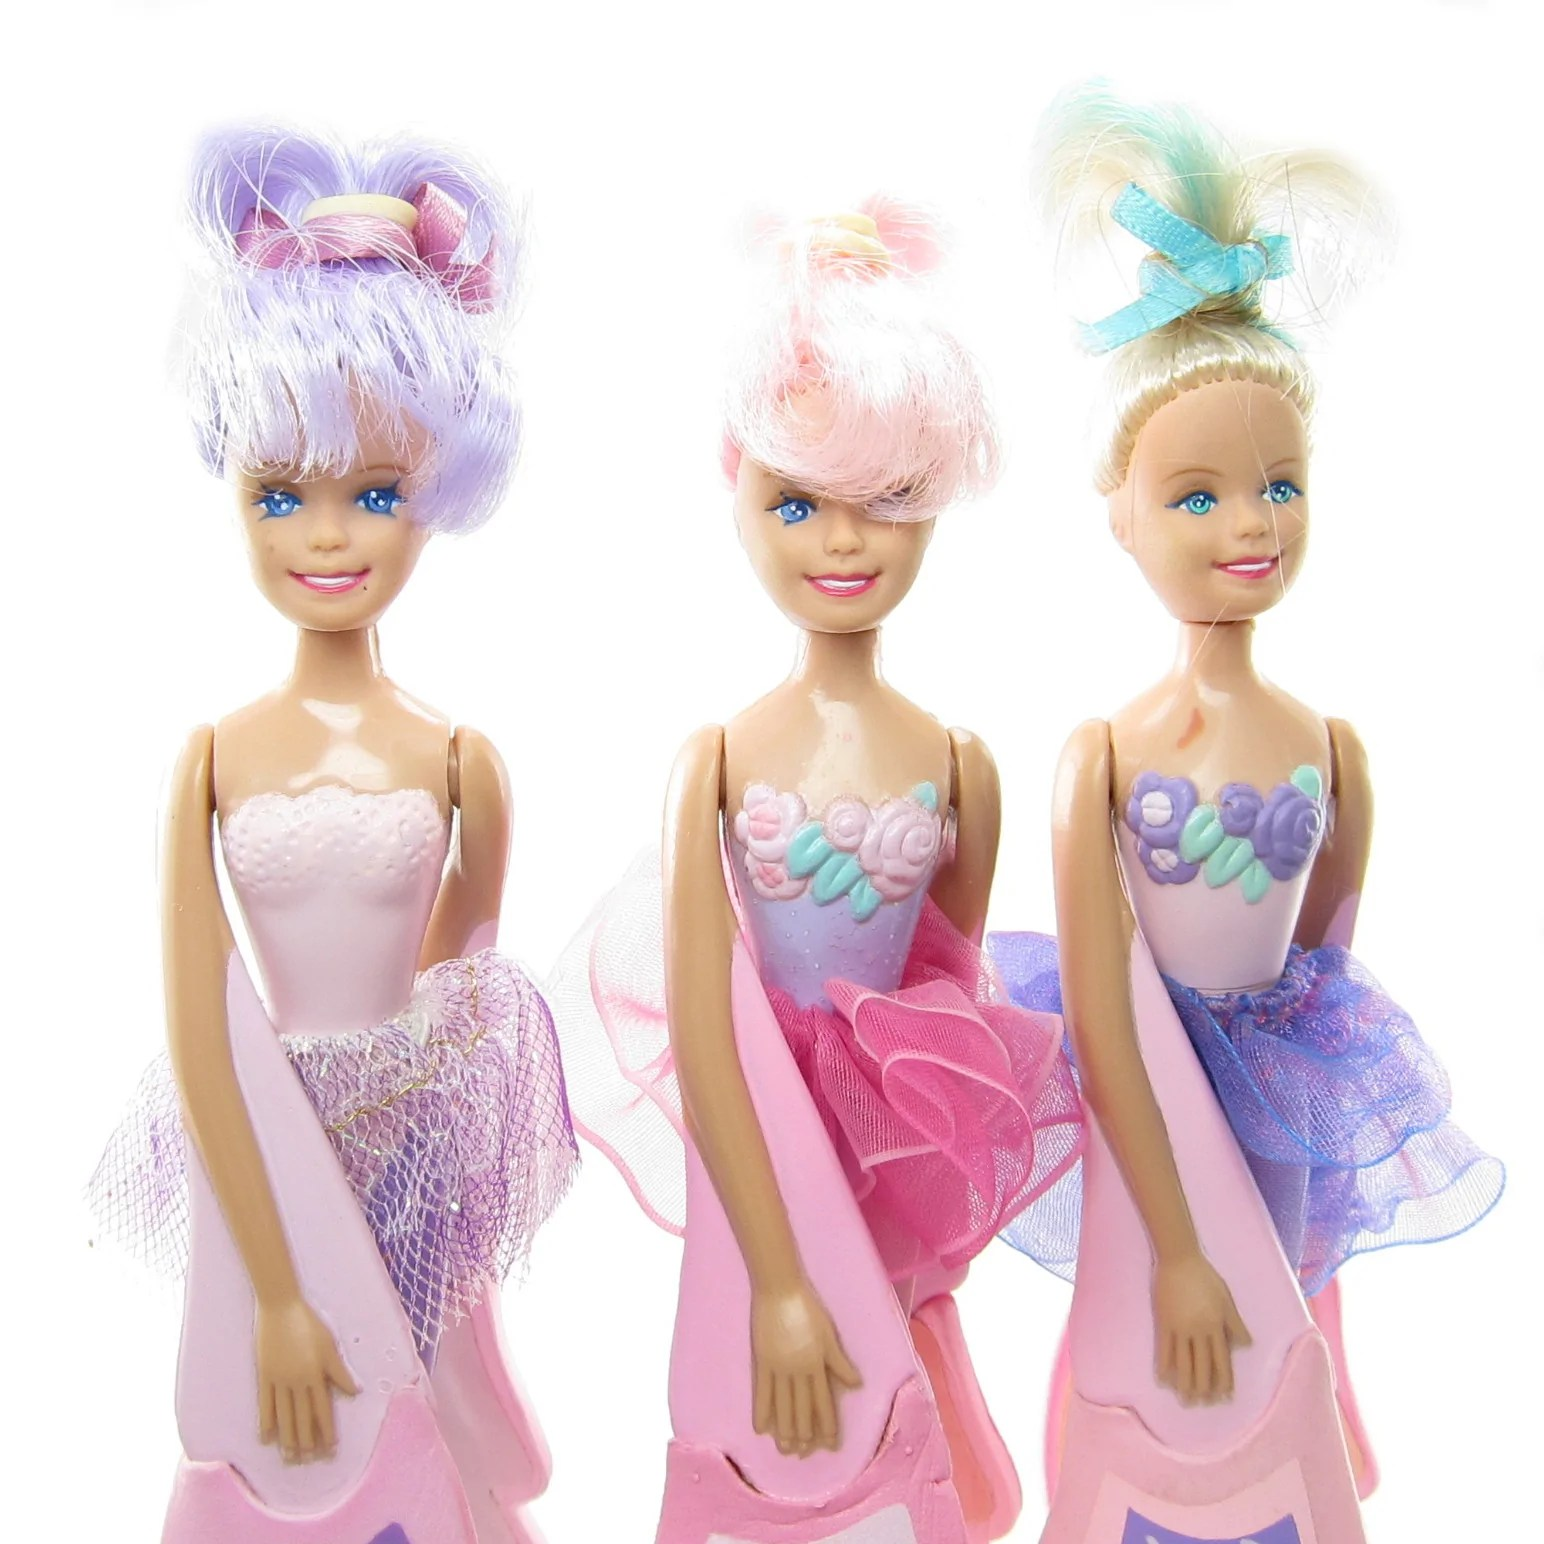 sky dancers dolls with